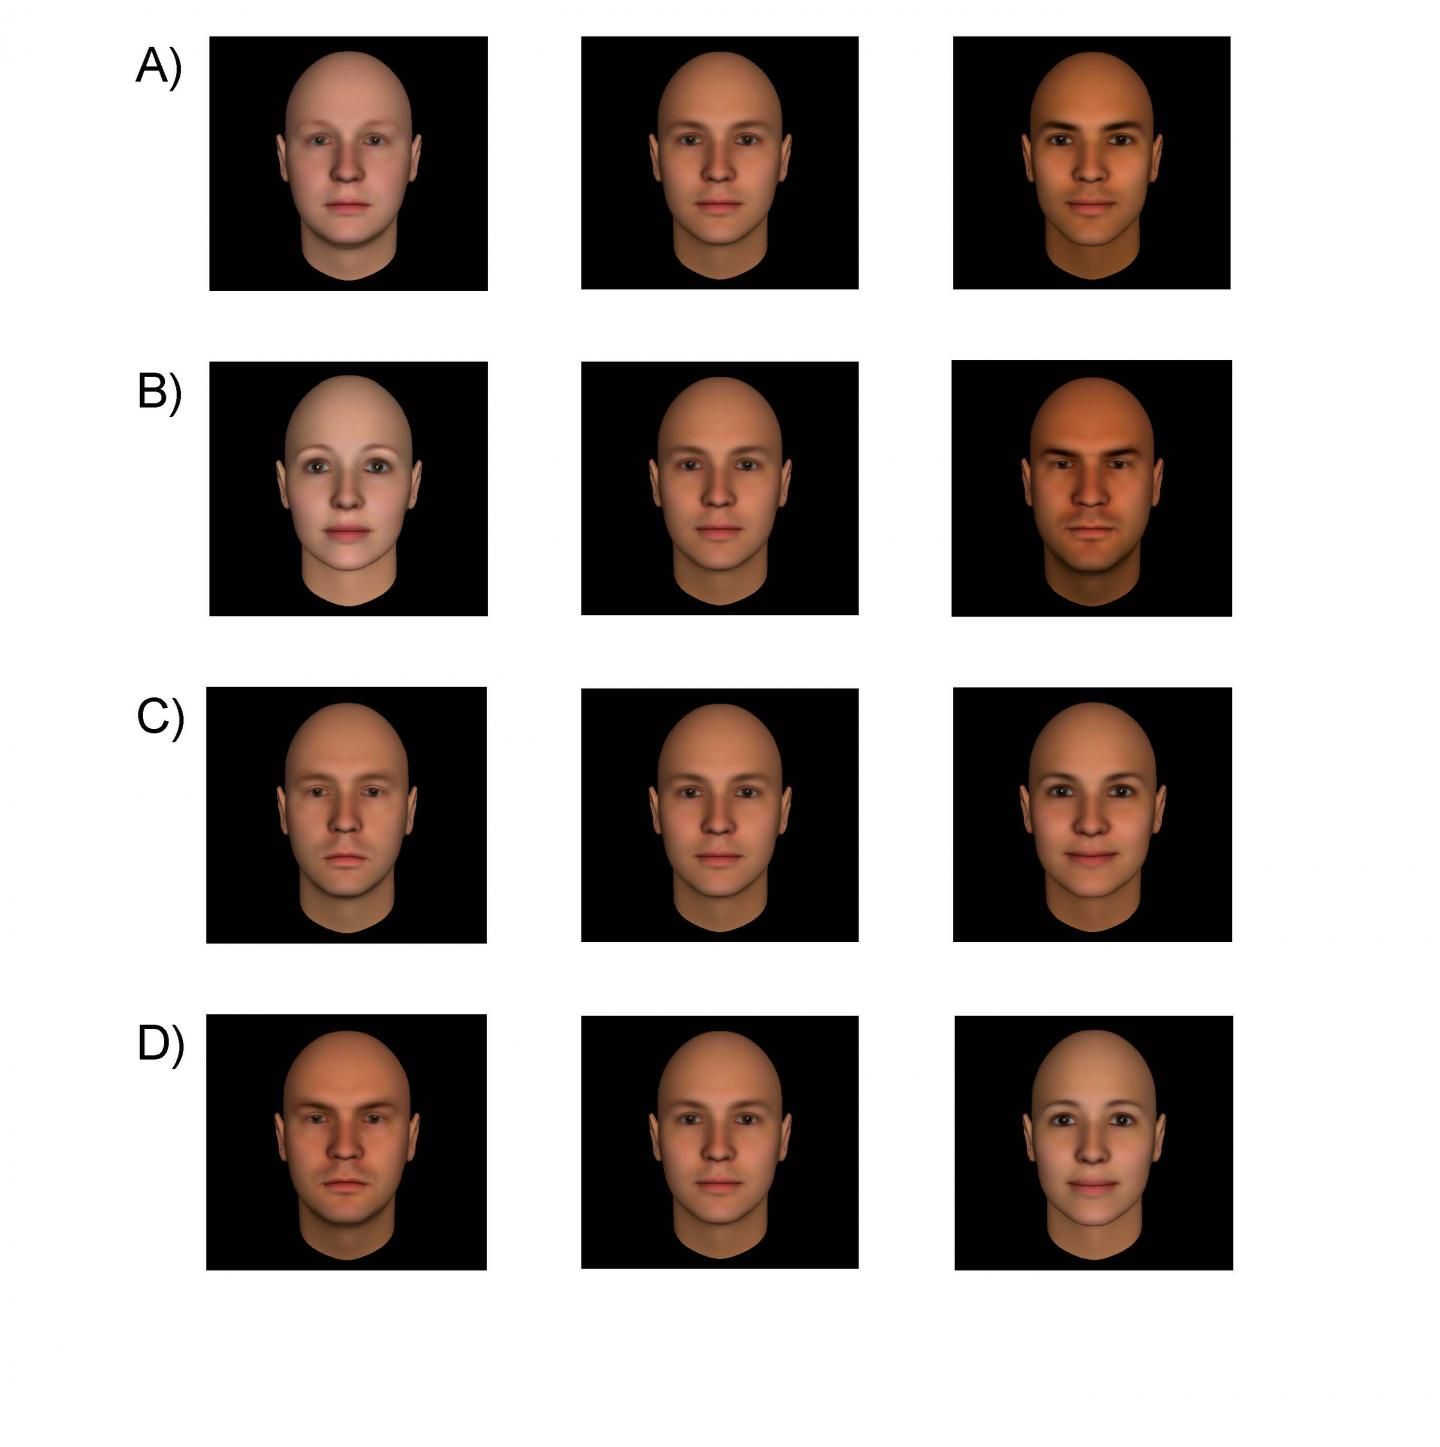 Building Models of Social Attributions from Faces